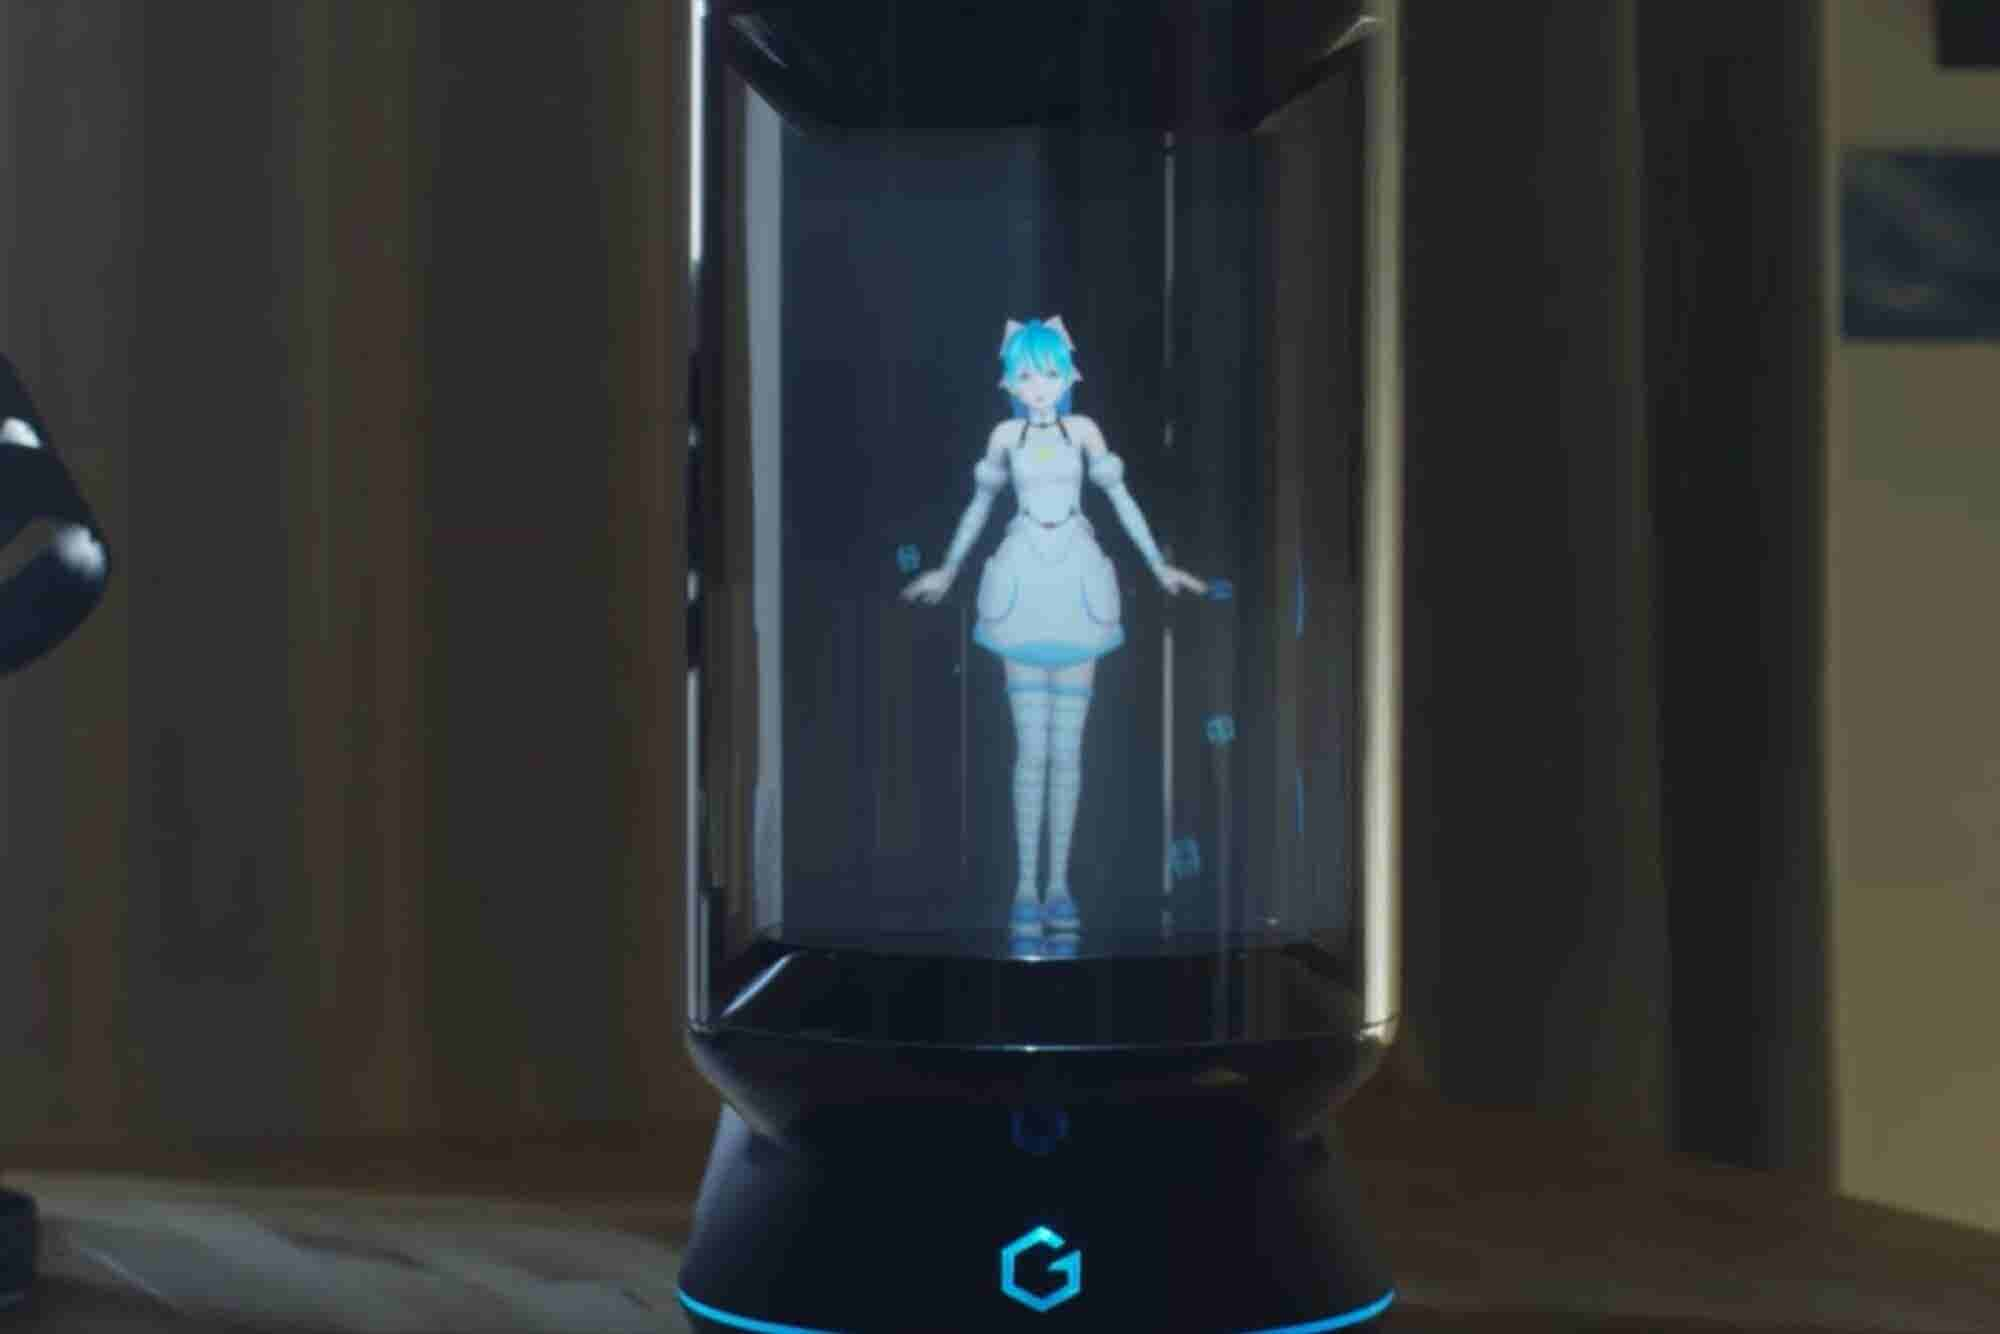 We Can't Help But Feel a Little Weirded Out by This Japanese Virtual Assistant